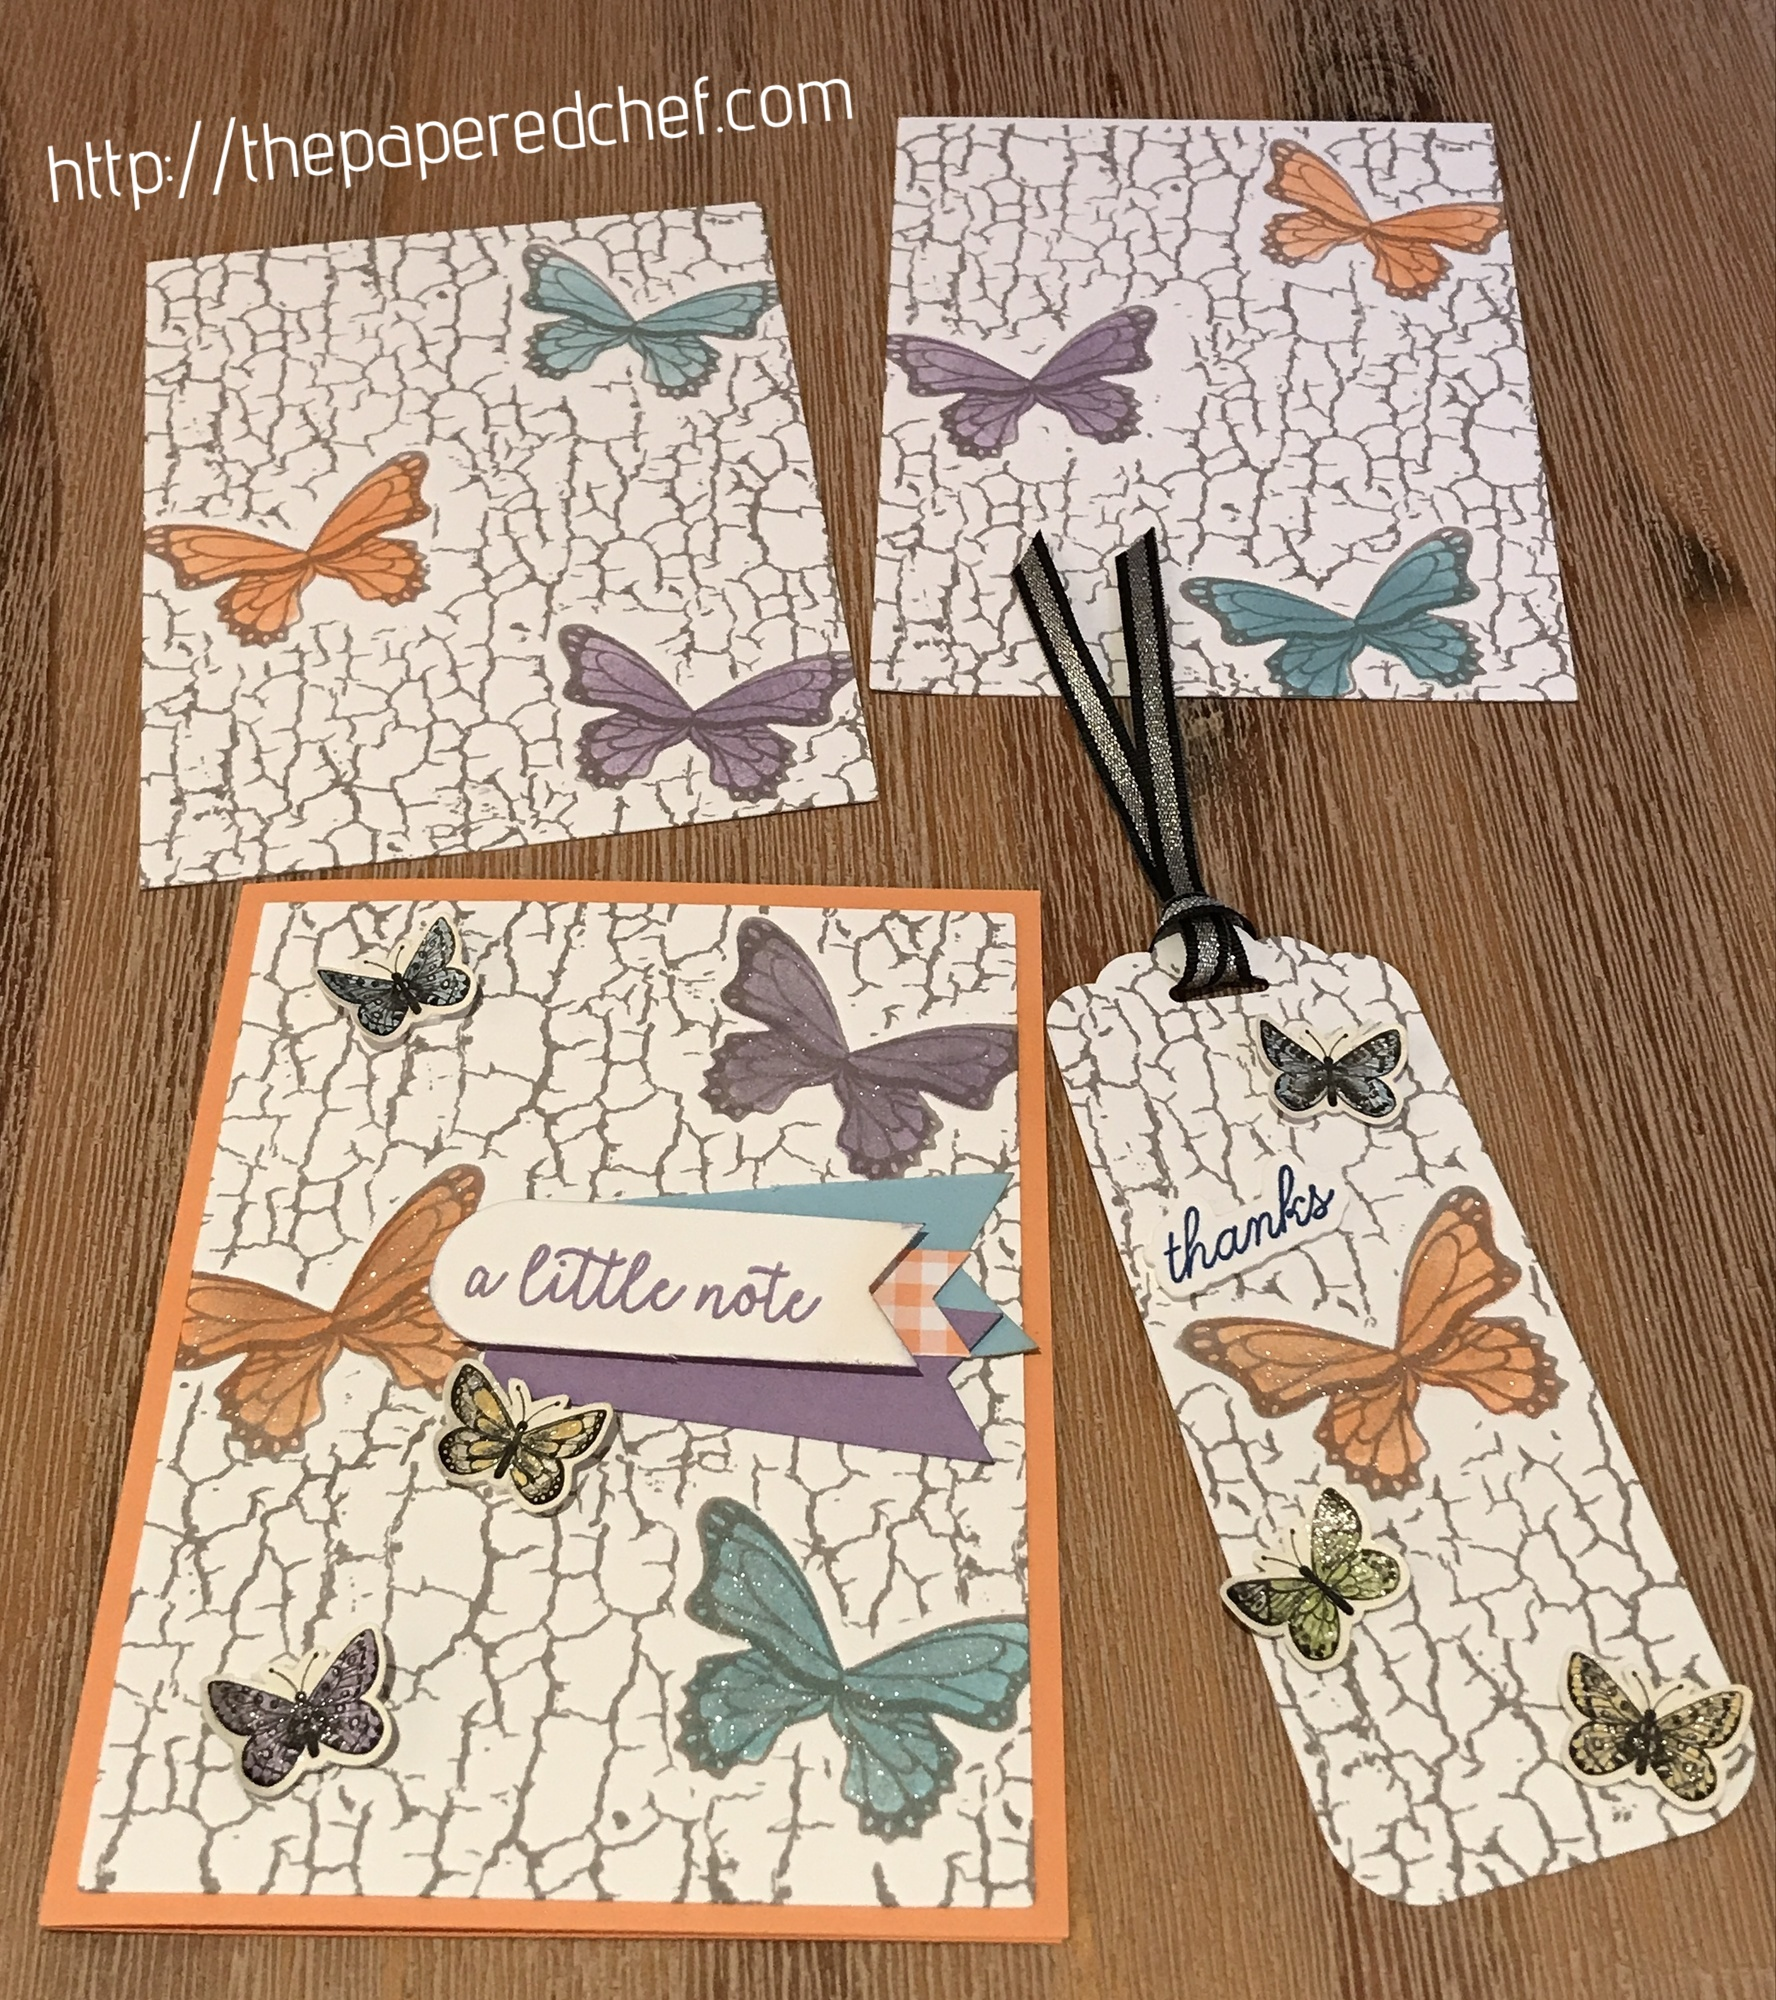 Butterfly Gala and Crackle Paint by Stampin' Up!